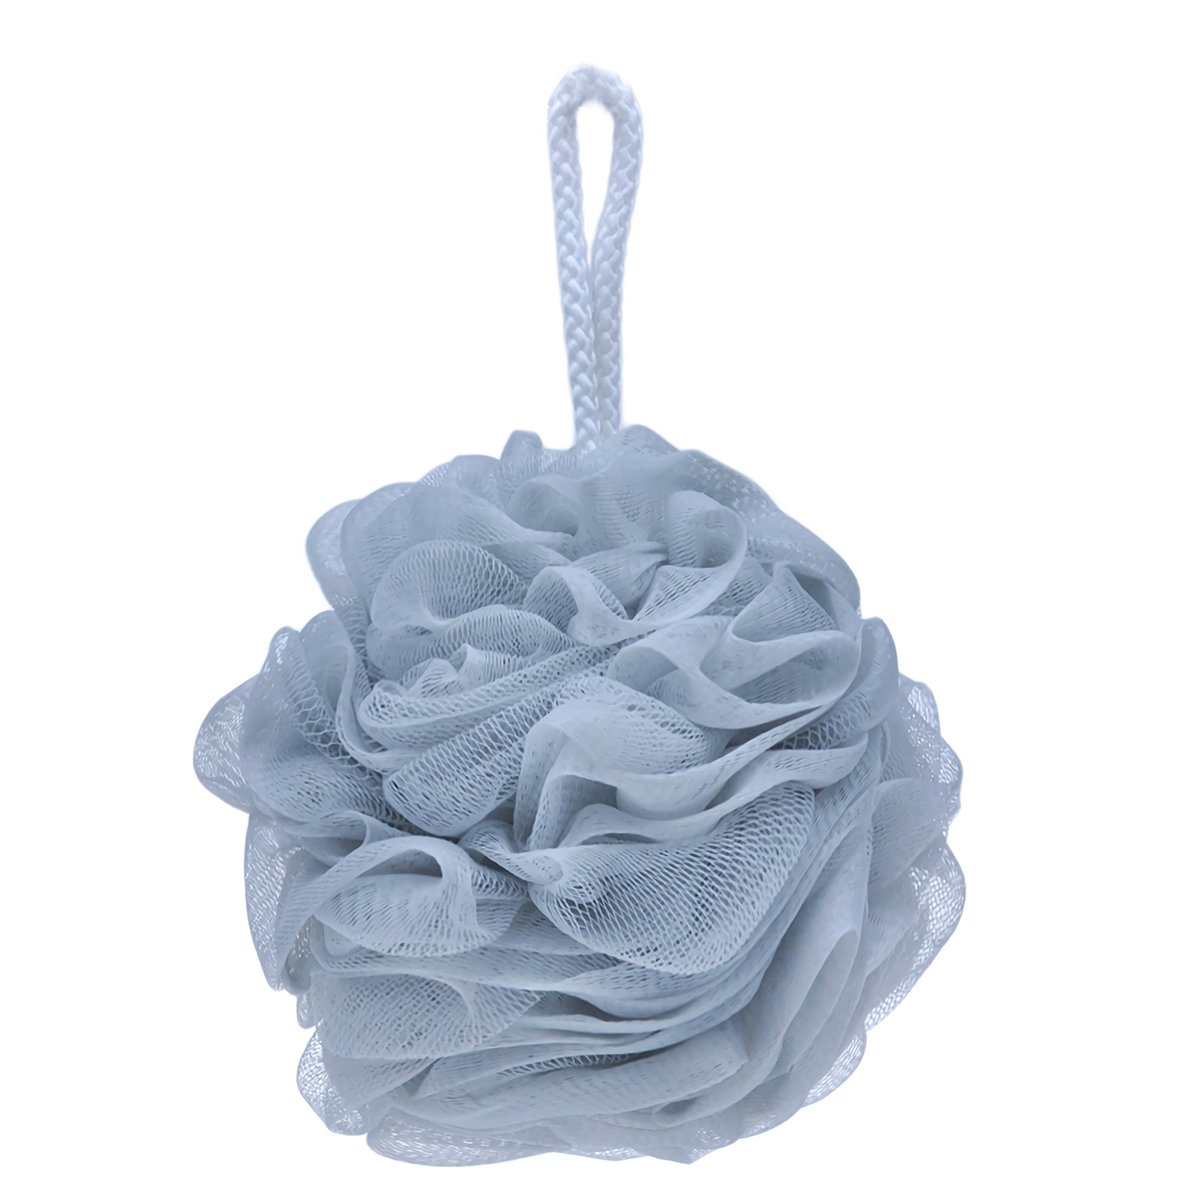 Dpijer Bath Shower Sponge Loofahs with Soft Natural Loofah Bath Flower Bath Ball Scrubber Shower Puffs Body Cleaning Exfoliating Bath Shower Sponge Mesh,Blue